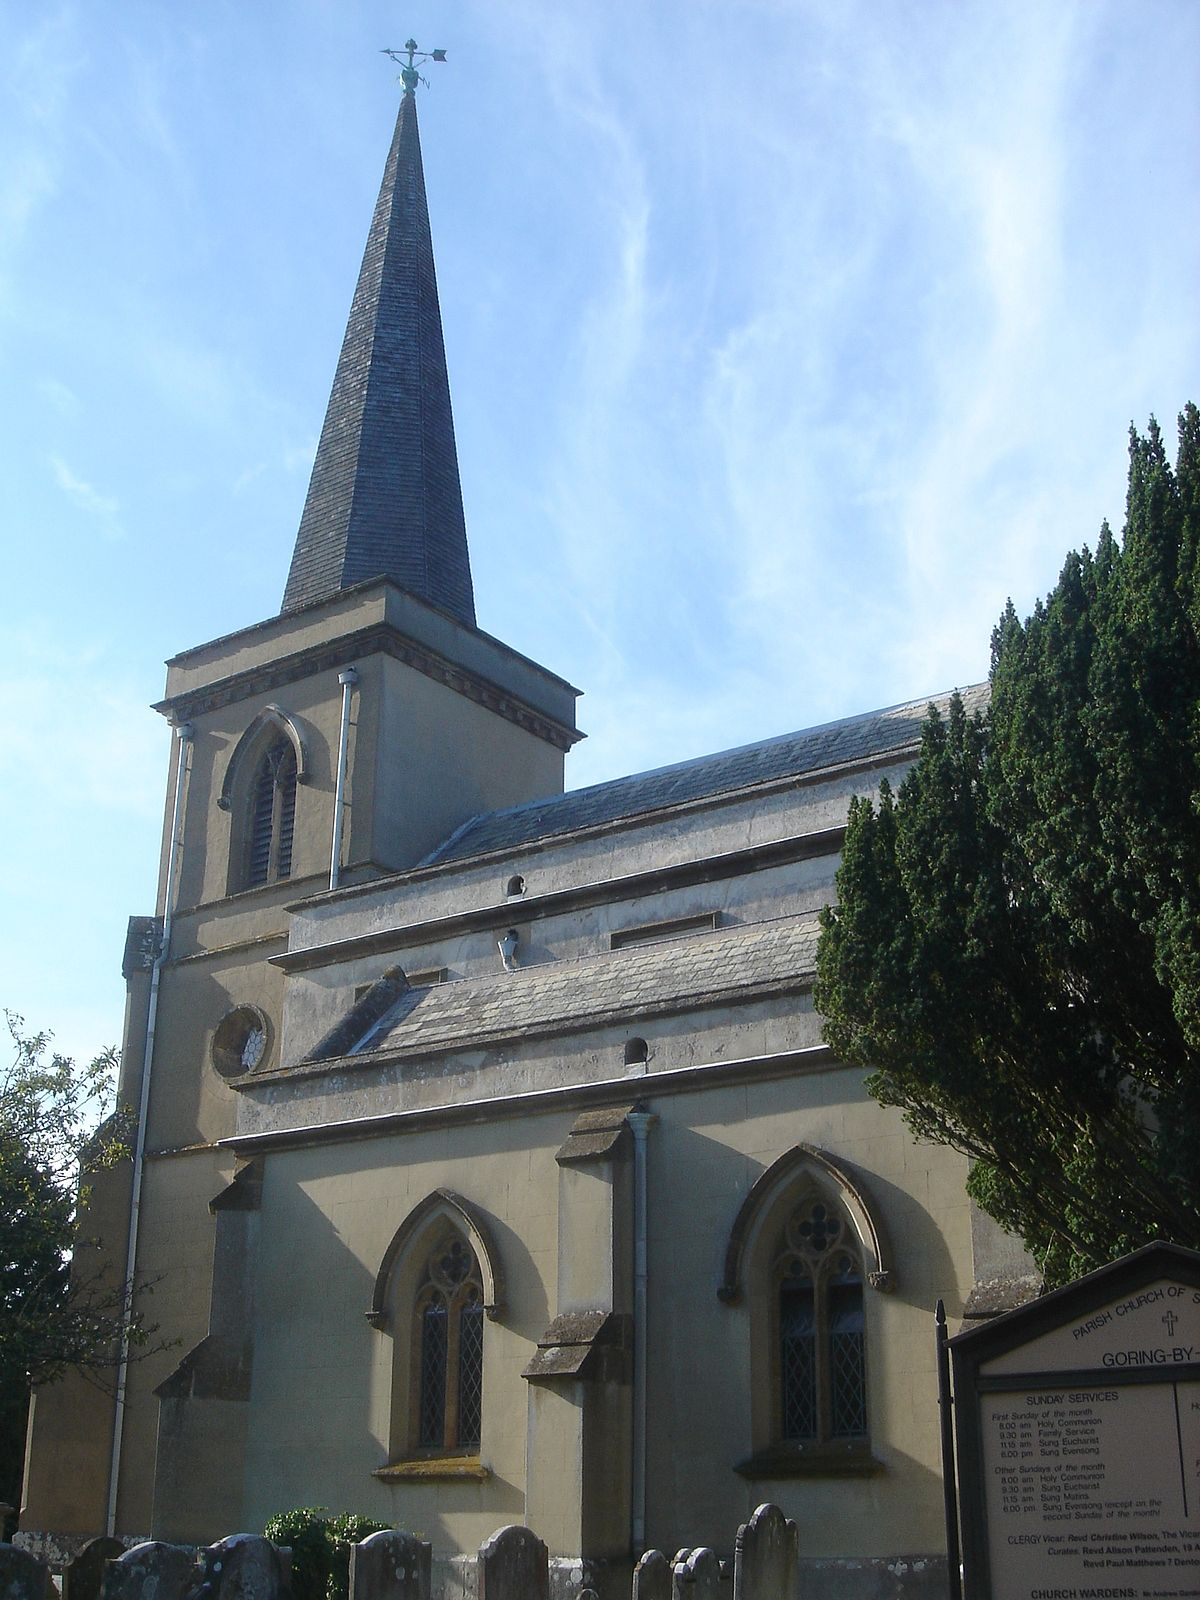 St Mary's Church, Goring-by-Sea - Wikipedia